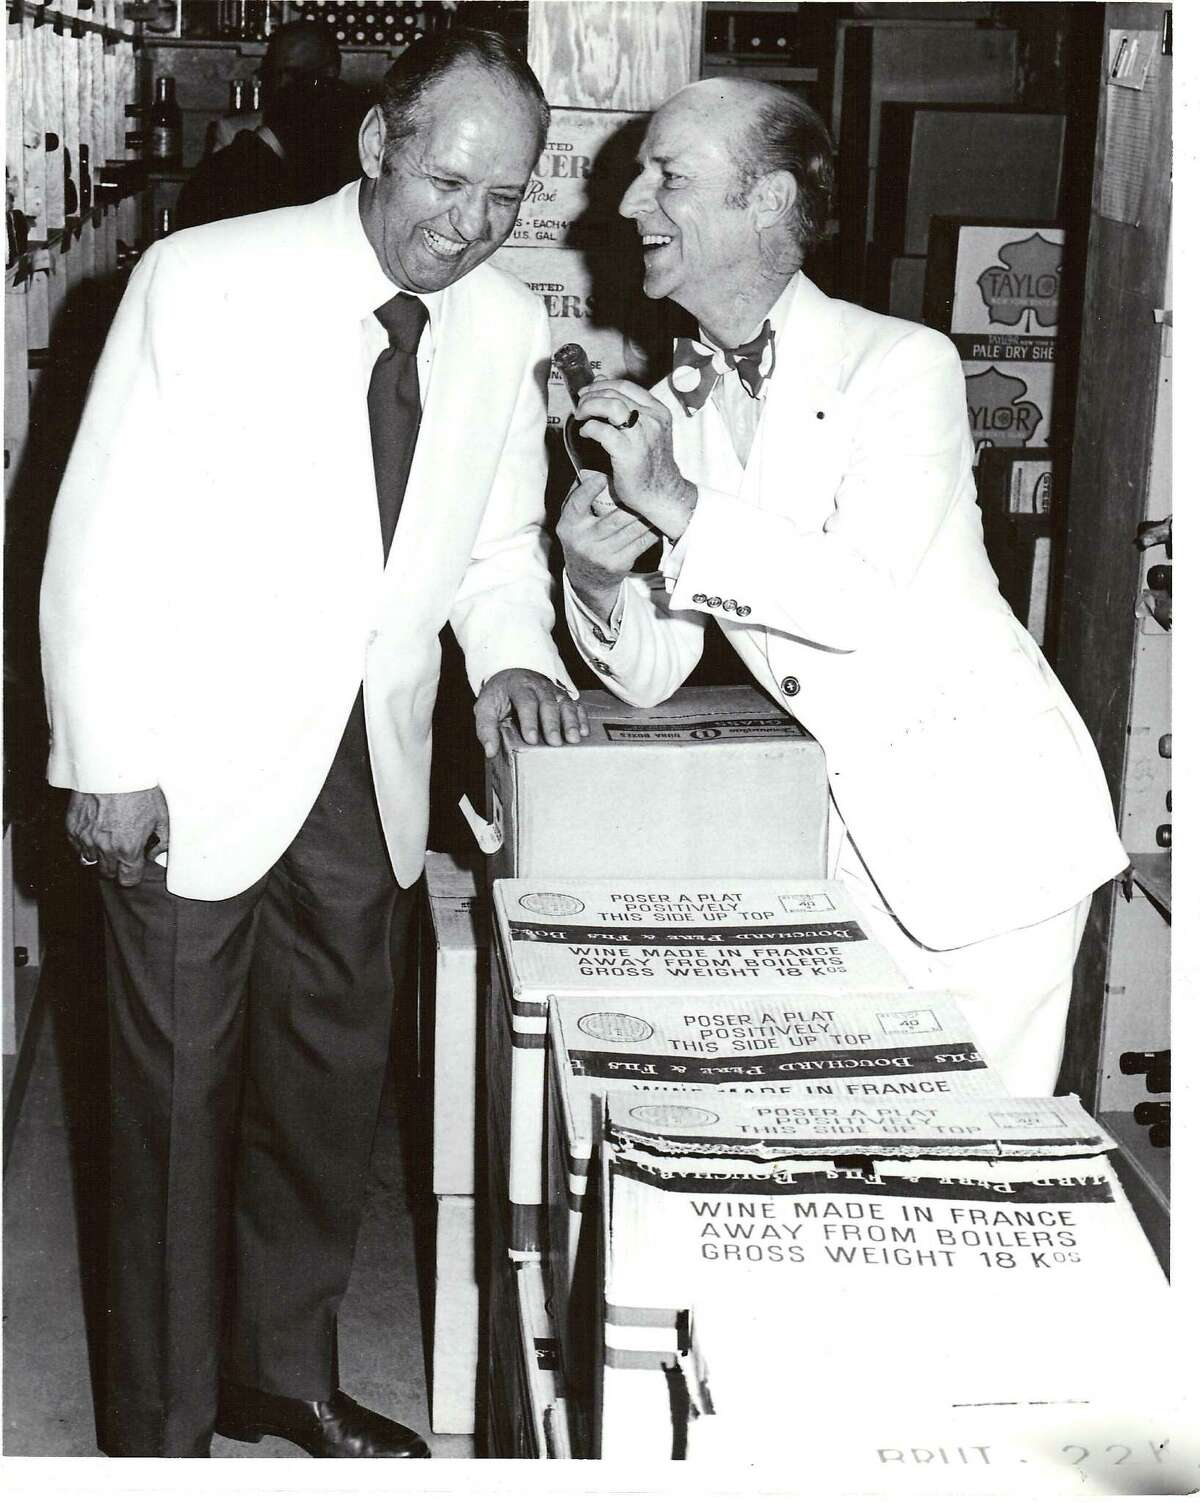 Holiday Food and Wine editor Robert Lawrence Balzar (right) meets La Louisiane owner George Dareos in the wine closet in 1974.